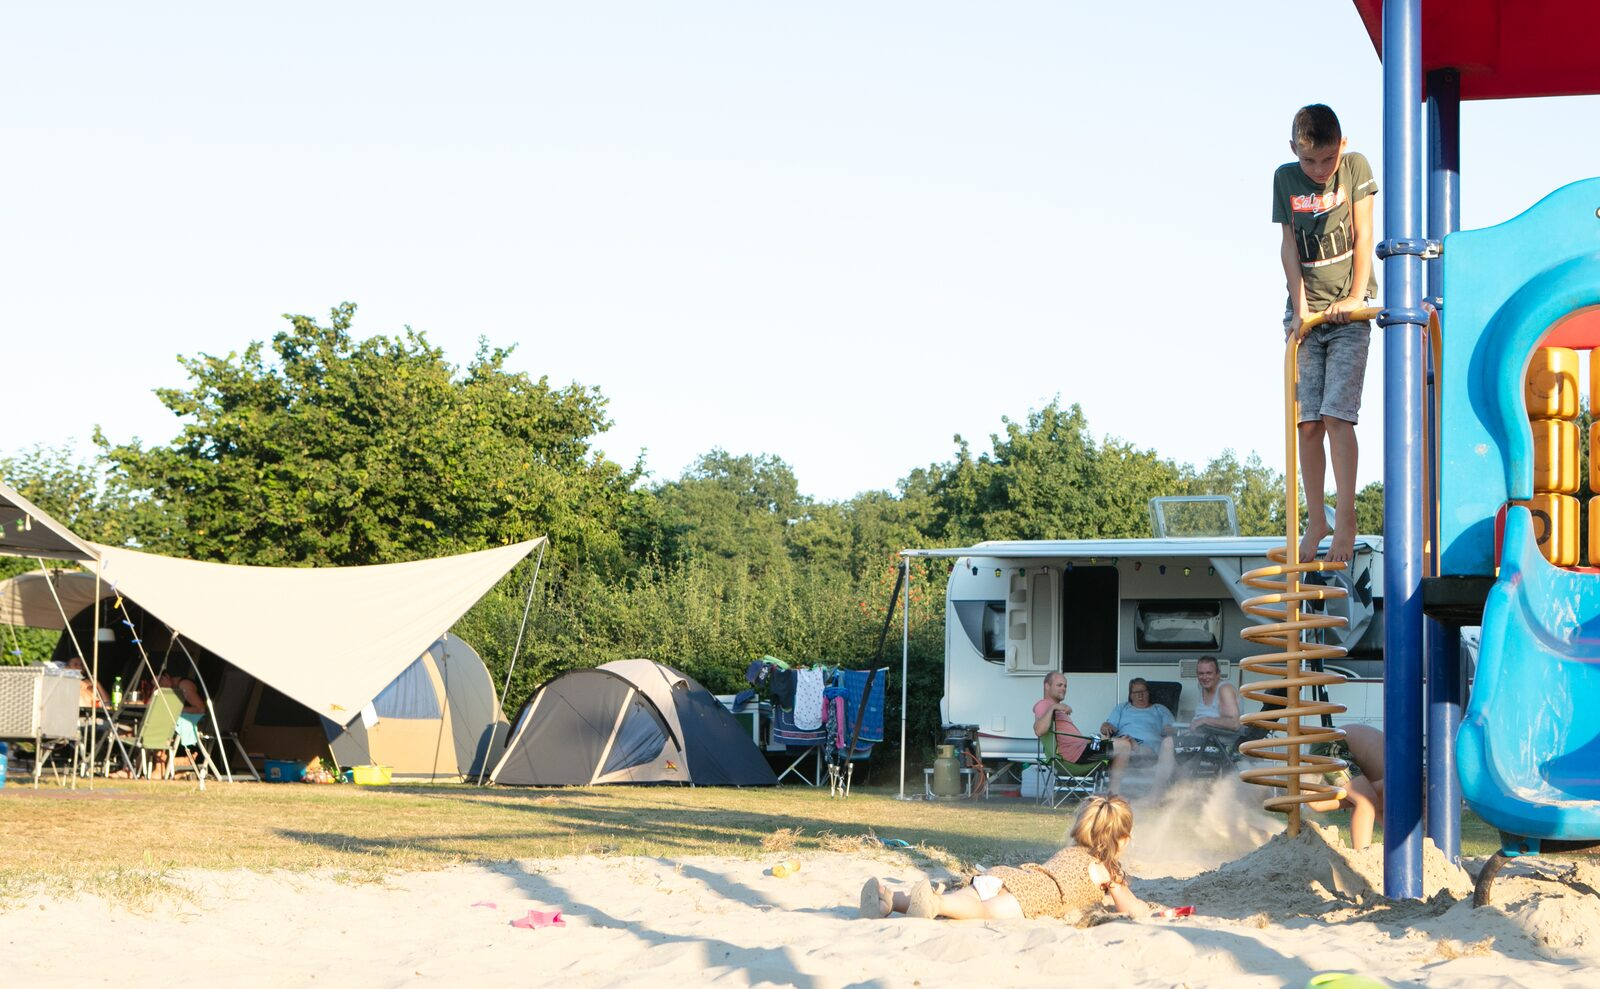 Camping Vechtdal